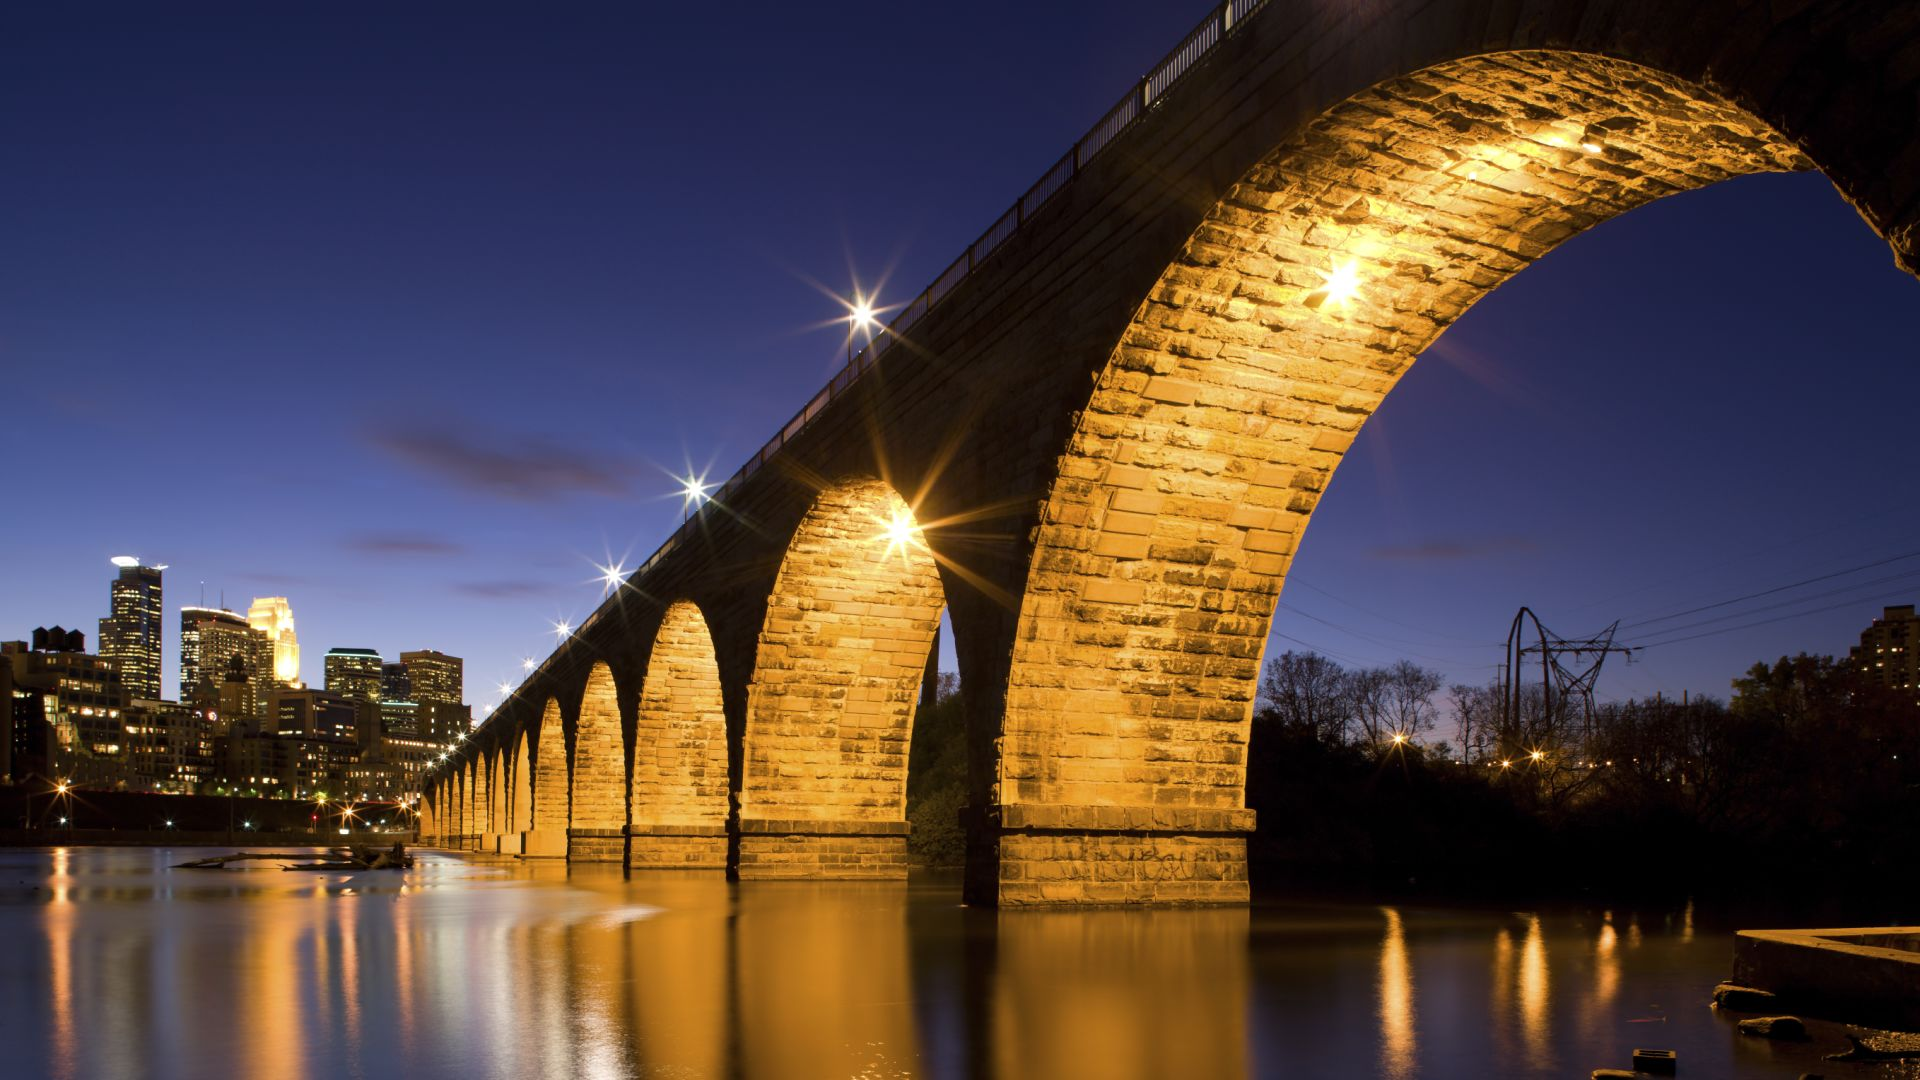 Minneapolis' famous stone arch bridge and Mississippi river